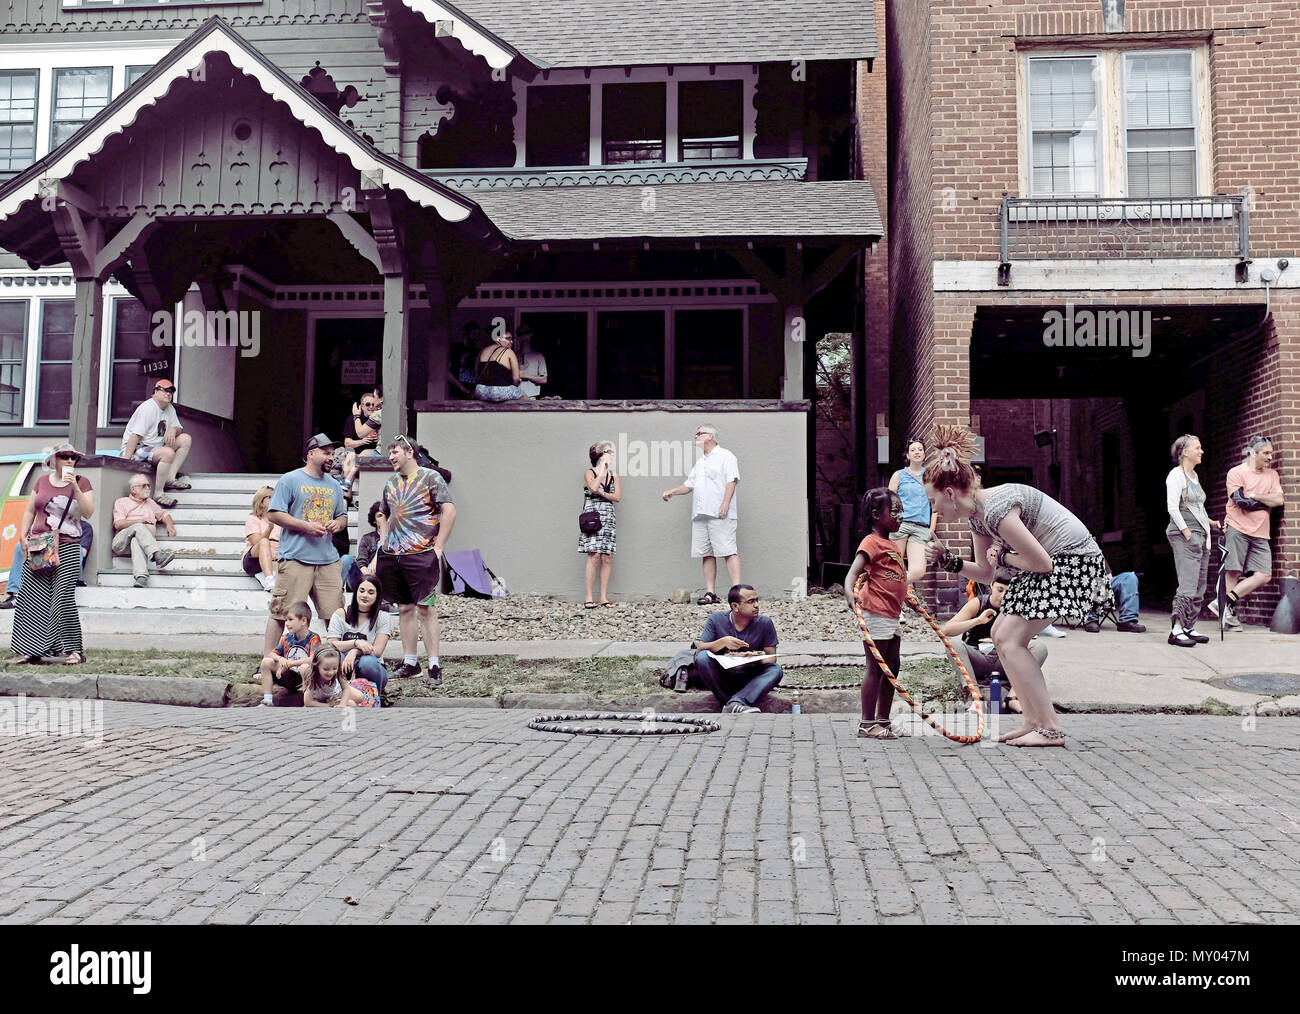 People enjoying a summer afternoon in Cleveland, Ohio, USA at the 2018 annual Hessler Street Fair. - Stock Image